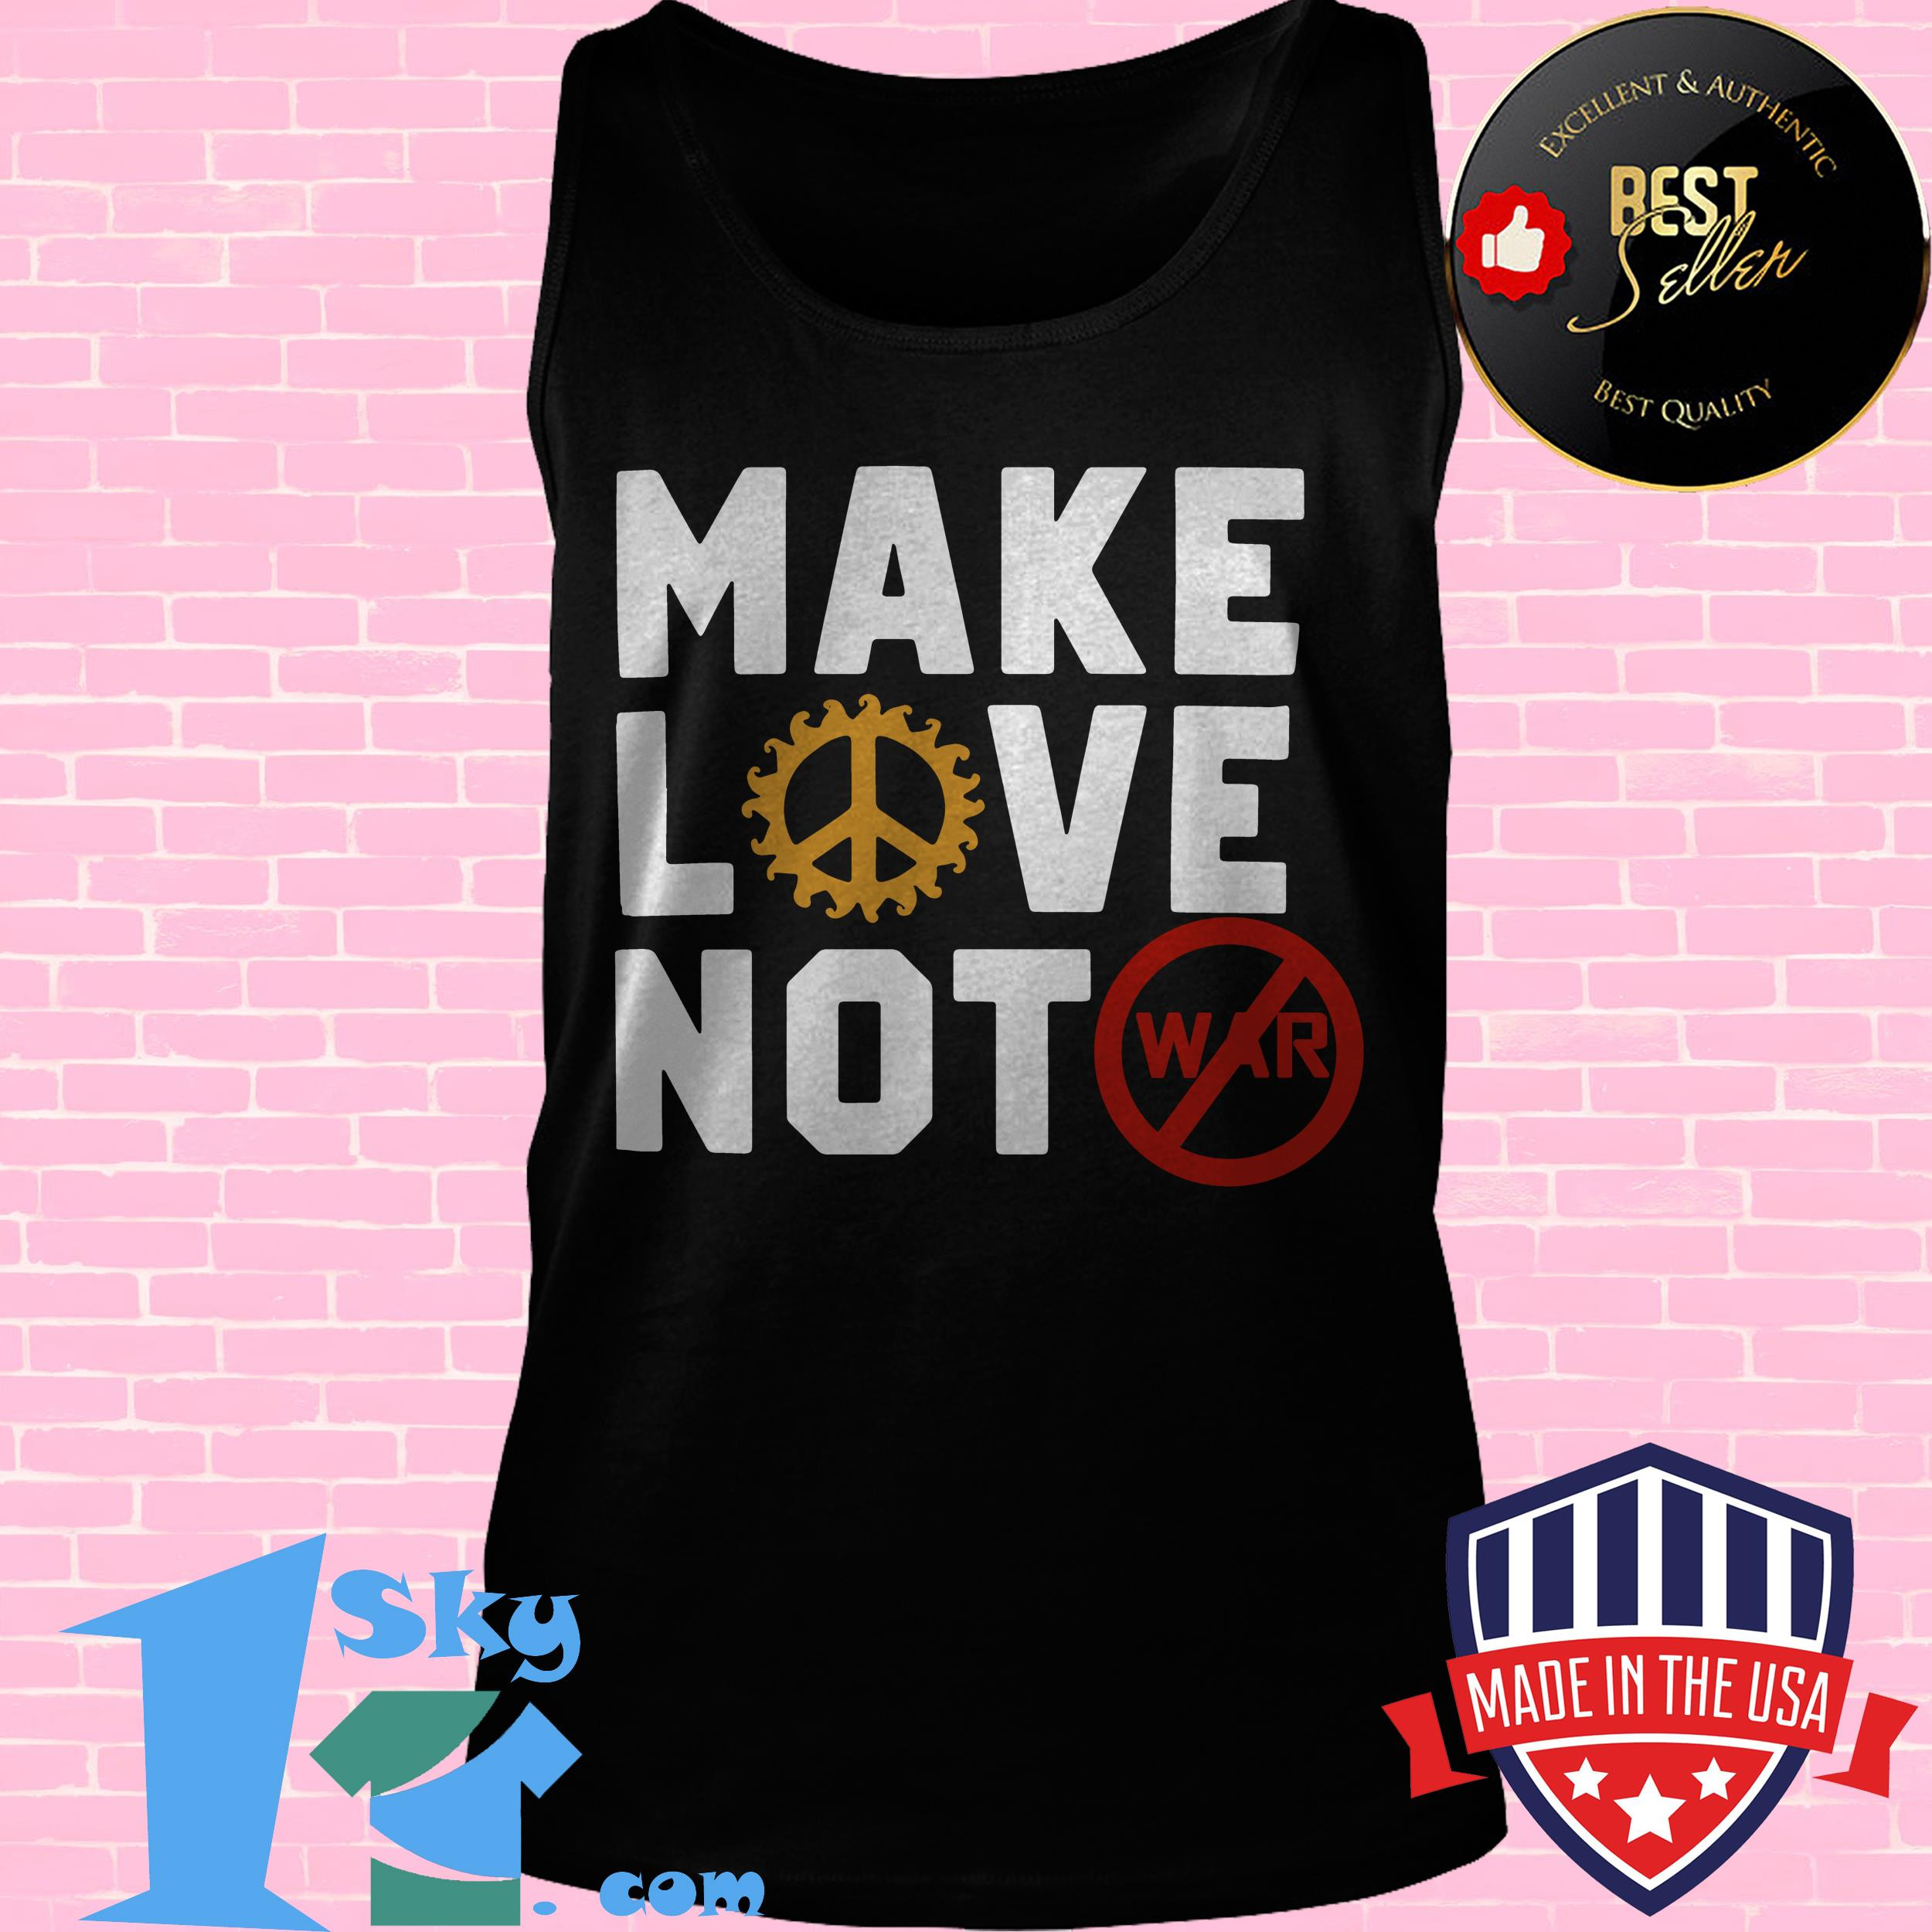 Make Love Not War Namast Gift for Hippie 70s shirt